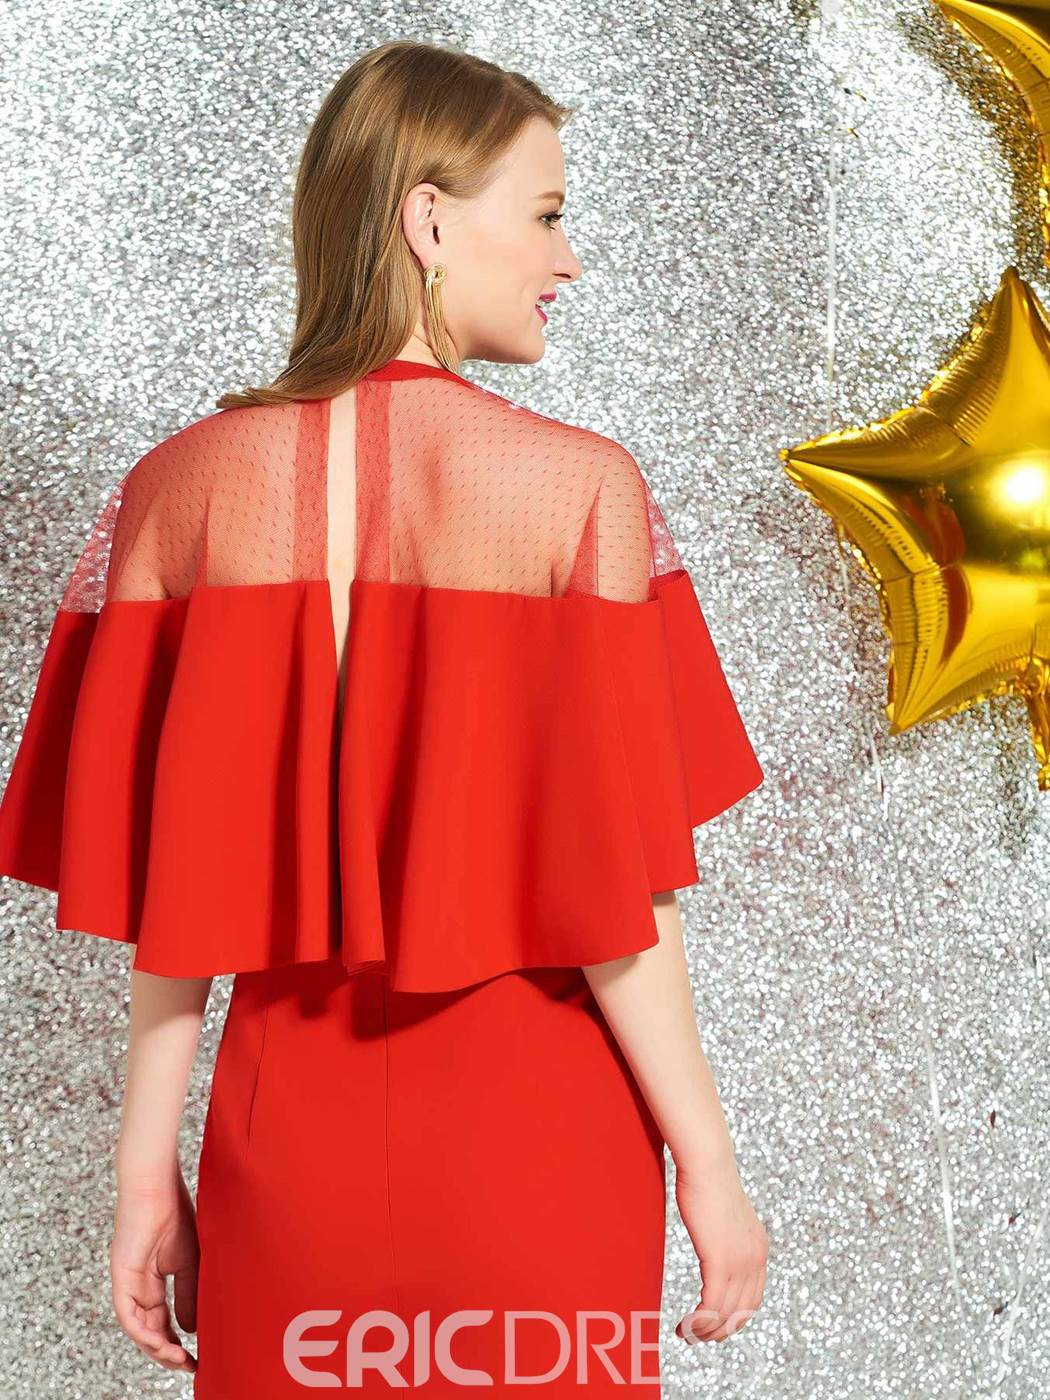 Ericdress Sheath Short Sleeves Red Cocktail Dress 2019